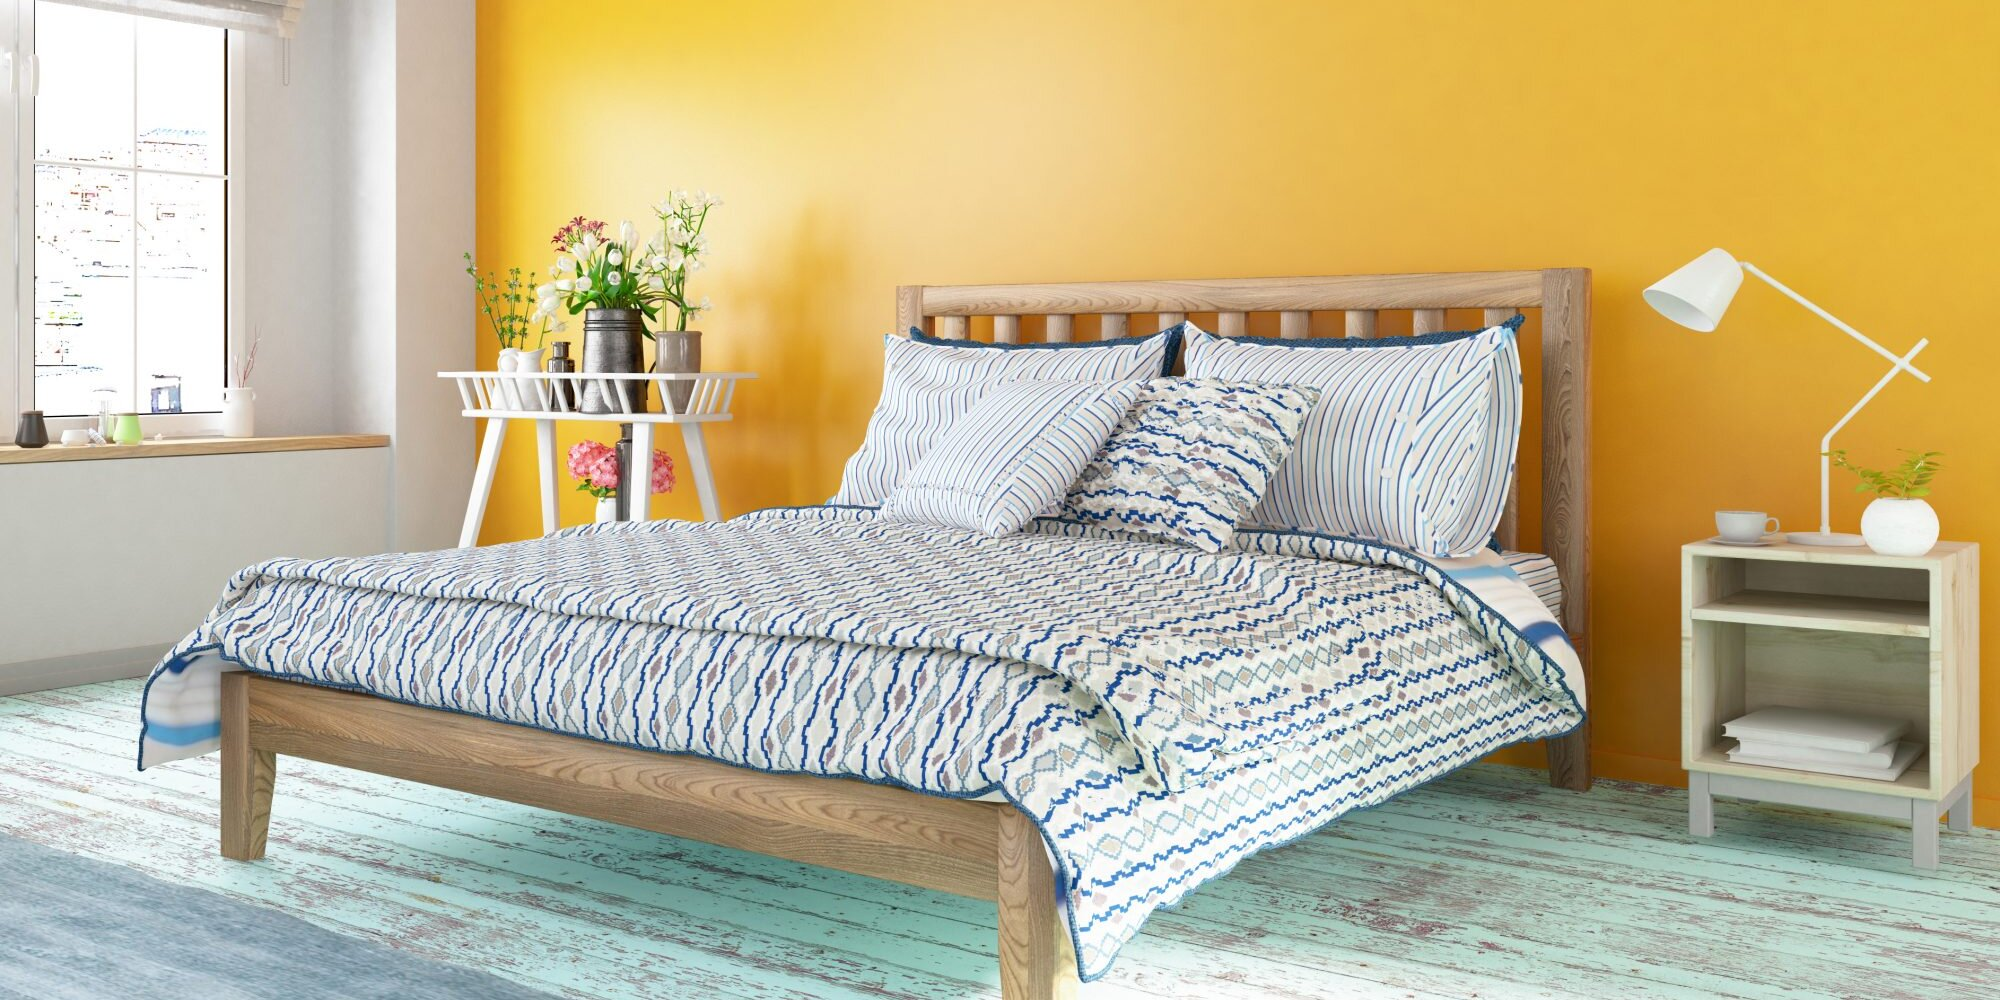 6 Foolproof Yellow Paint Colors The Pros Swear By Real Simple